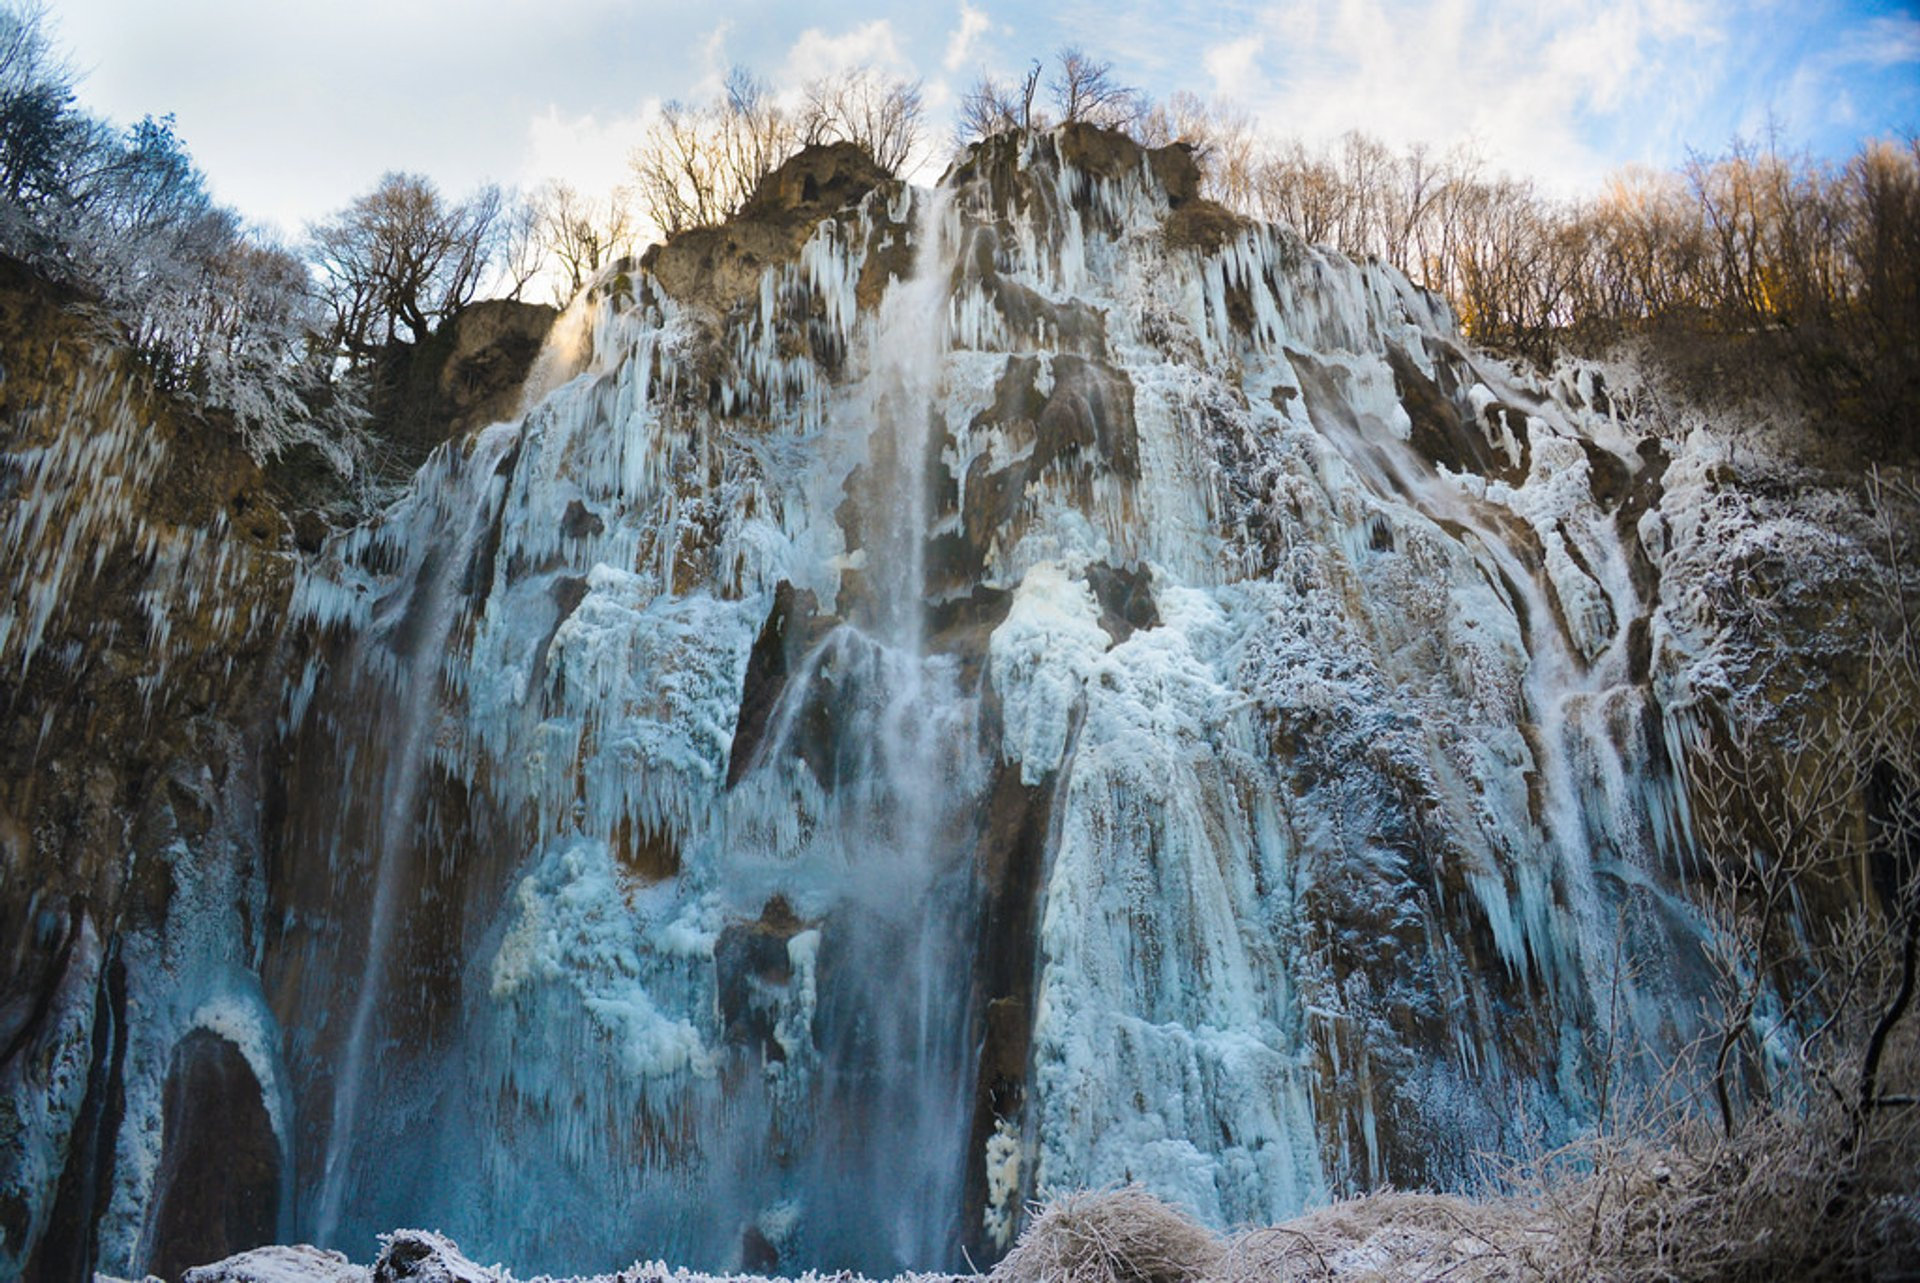 Frozen Waterfalls in Plitvice Lakes in Croatia 2020 - Best Time